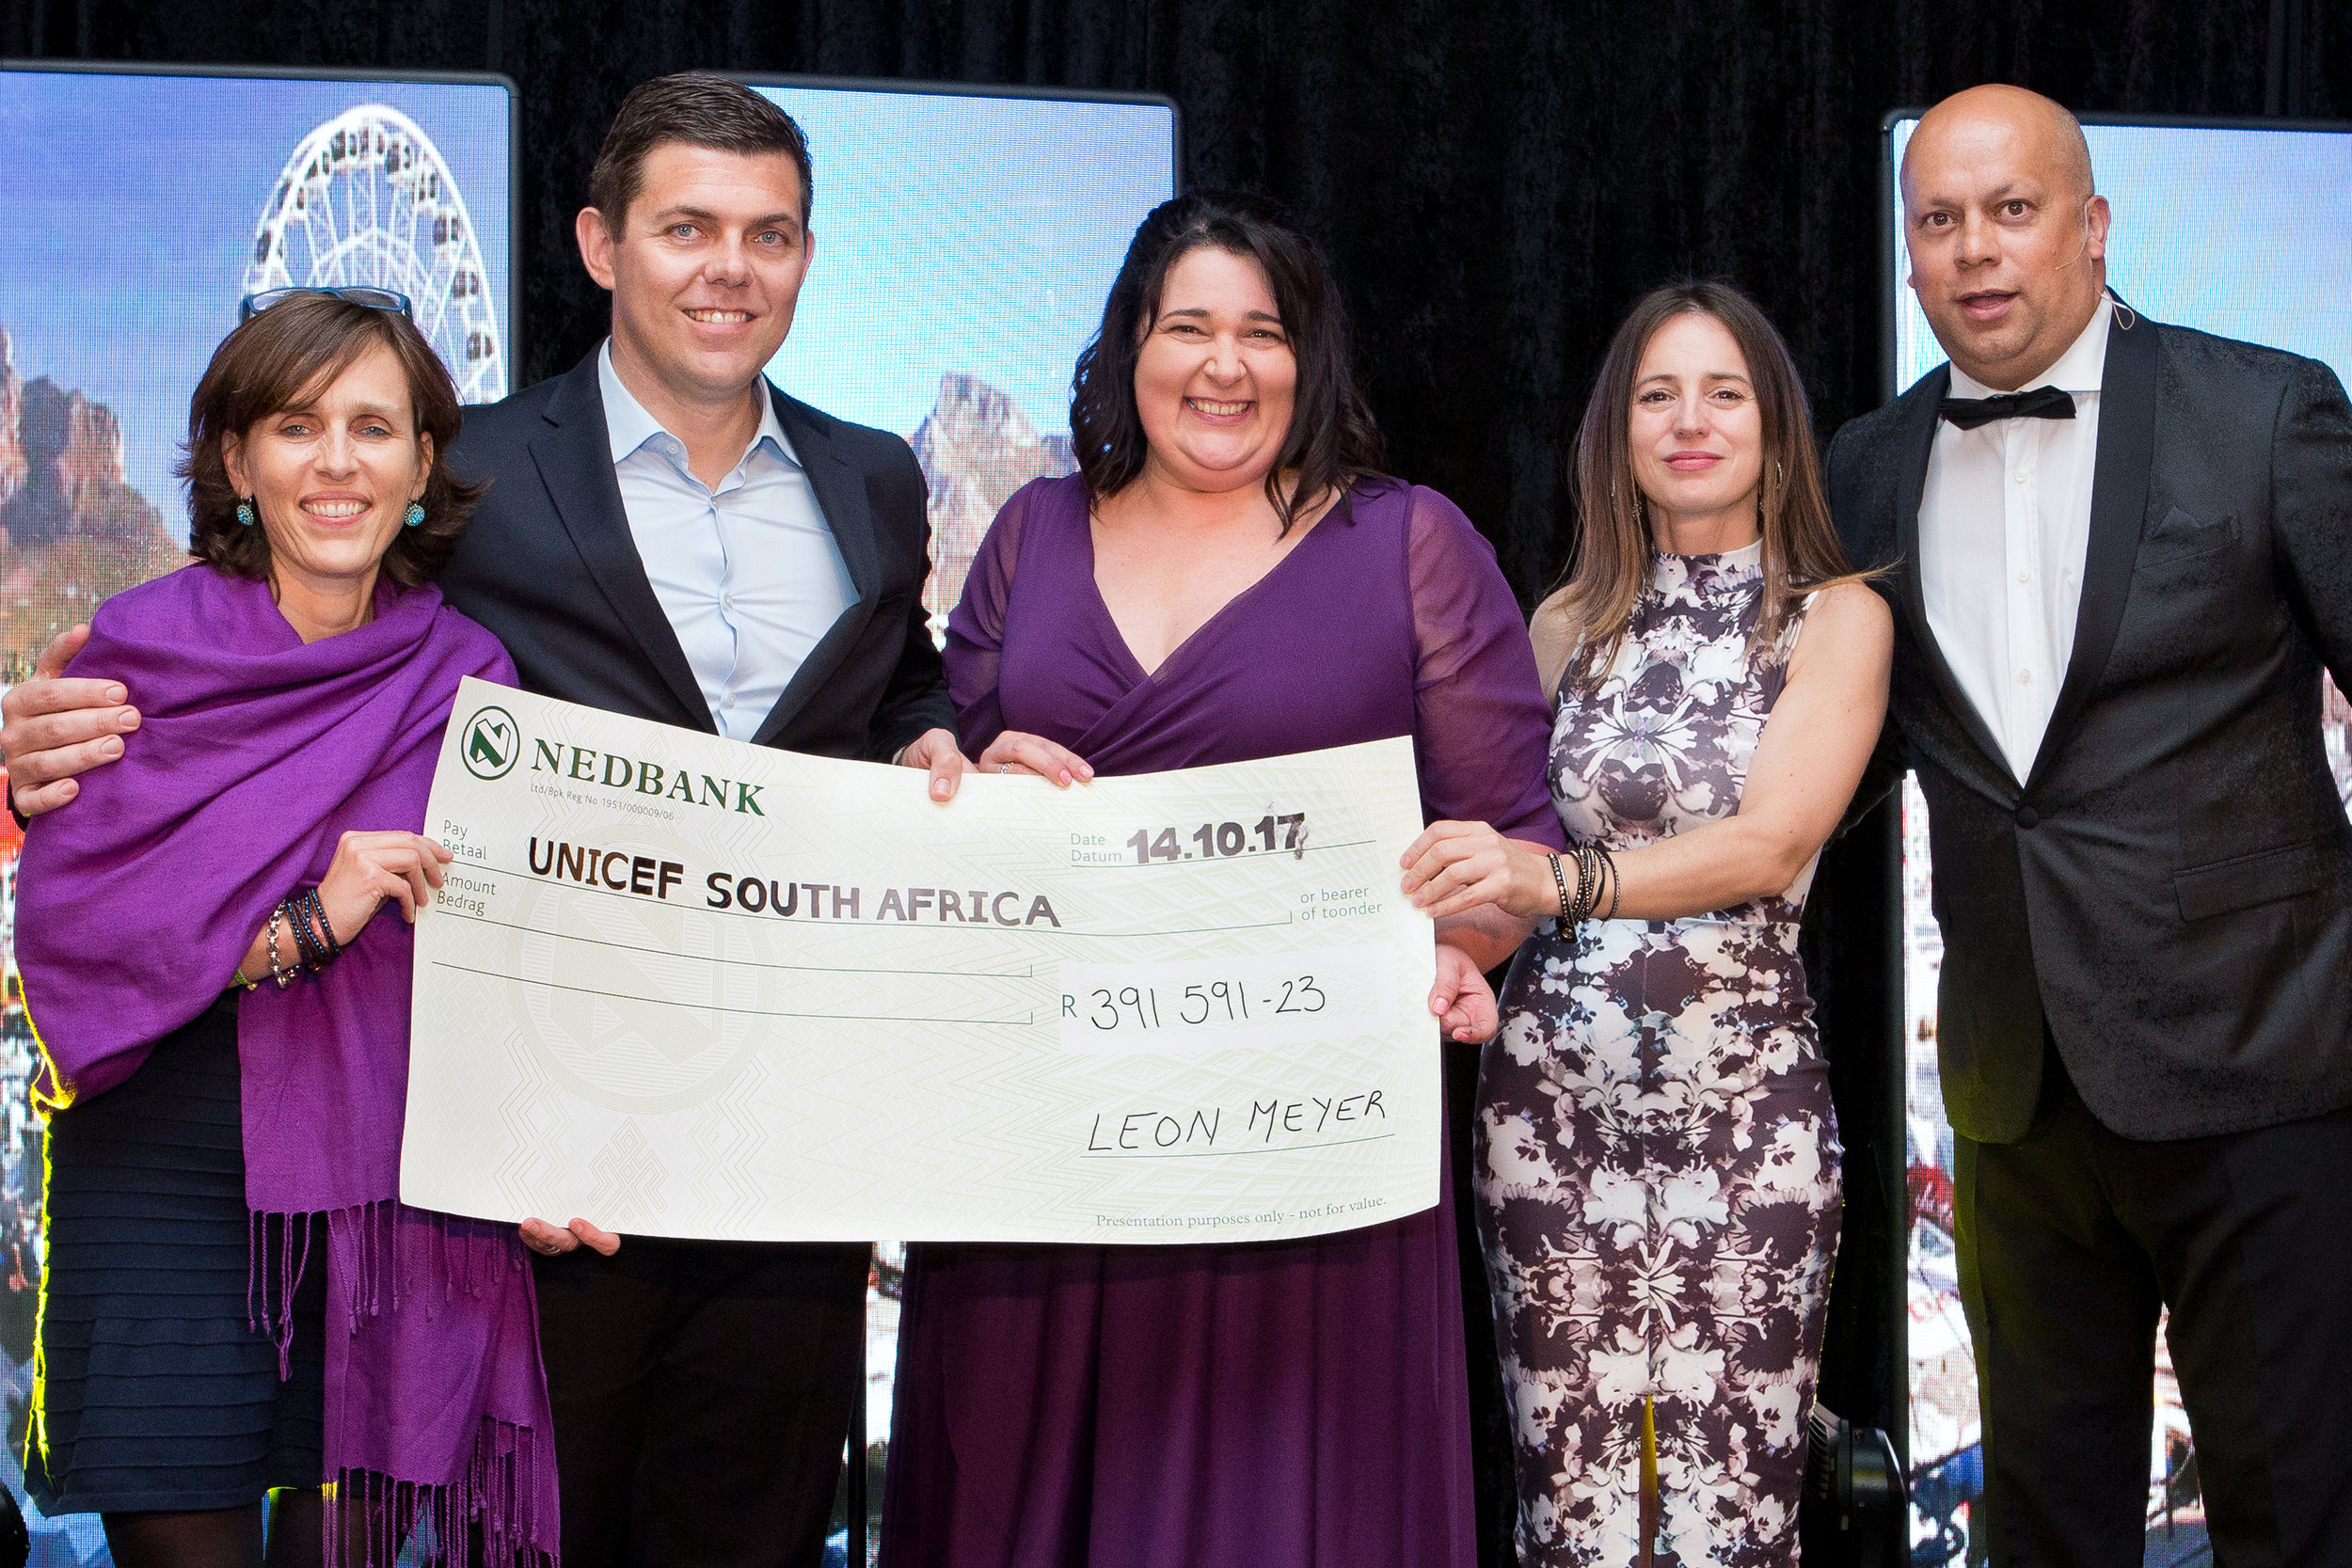 From left: Carine Munting – UNICEF Partnership Manager, Leon Meyer – General Manager The Westin, Marilize van Niekerk – Executive secretary to the General Manager, Sandra Bisin – UNICEF Chief of Communication and Partnerships and Jeremy Harris – radio personality and event MC.